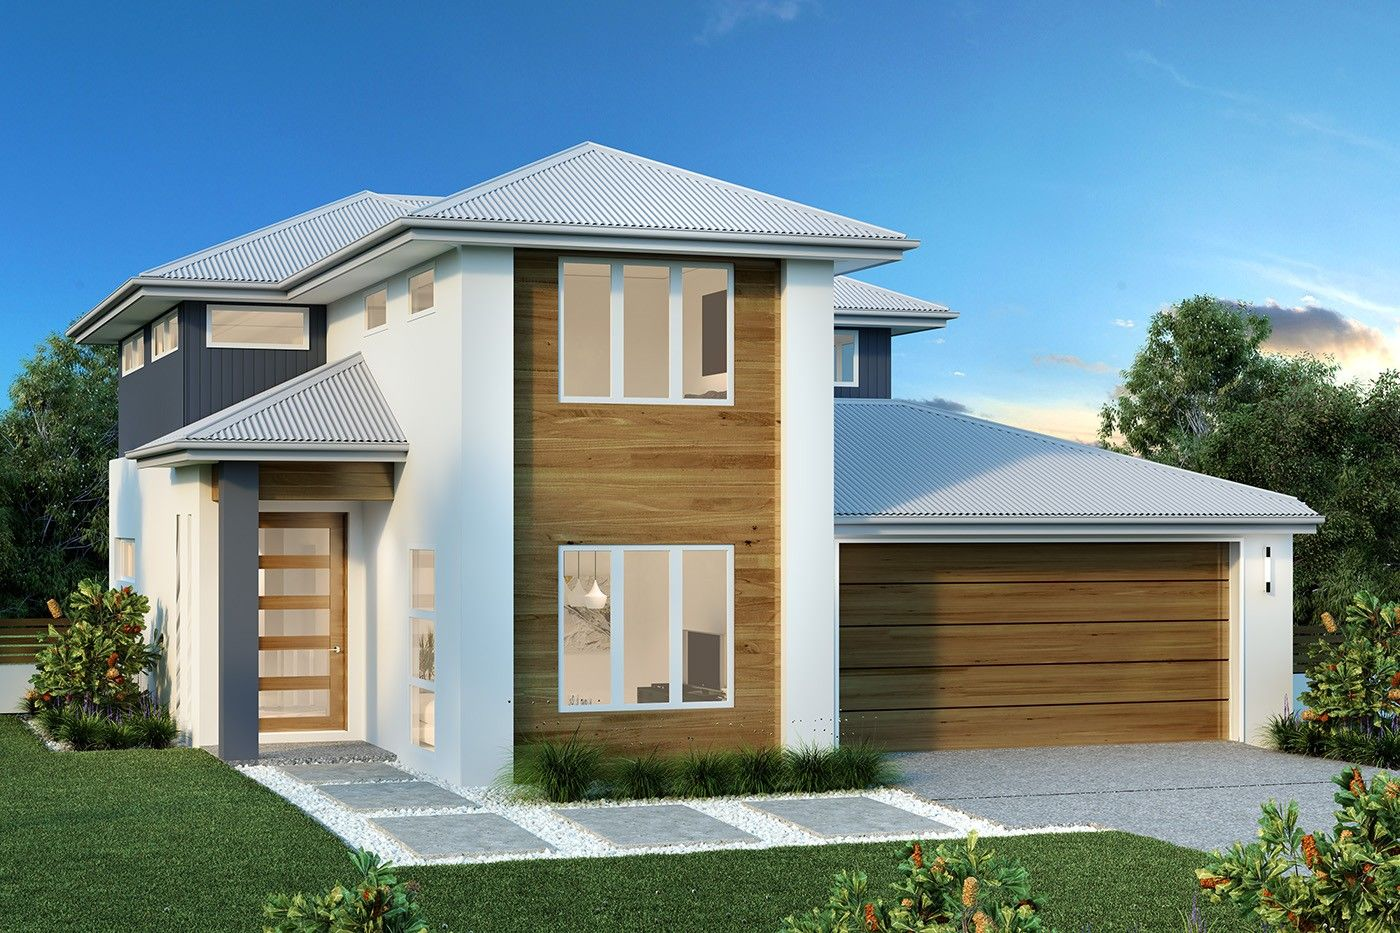 Lot 4 Mayfair Lane, Rochedale QLD 4123, Image 0